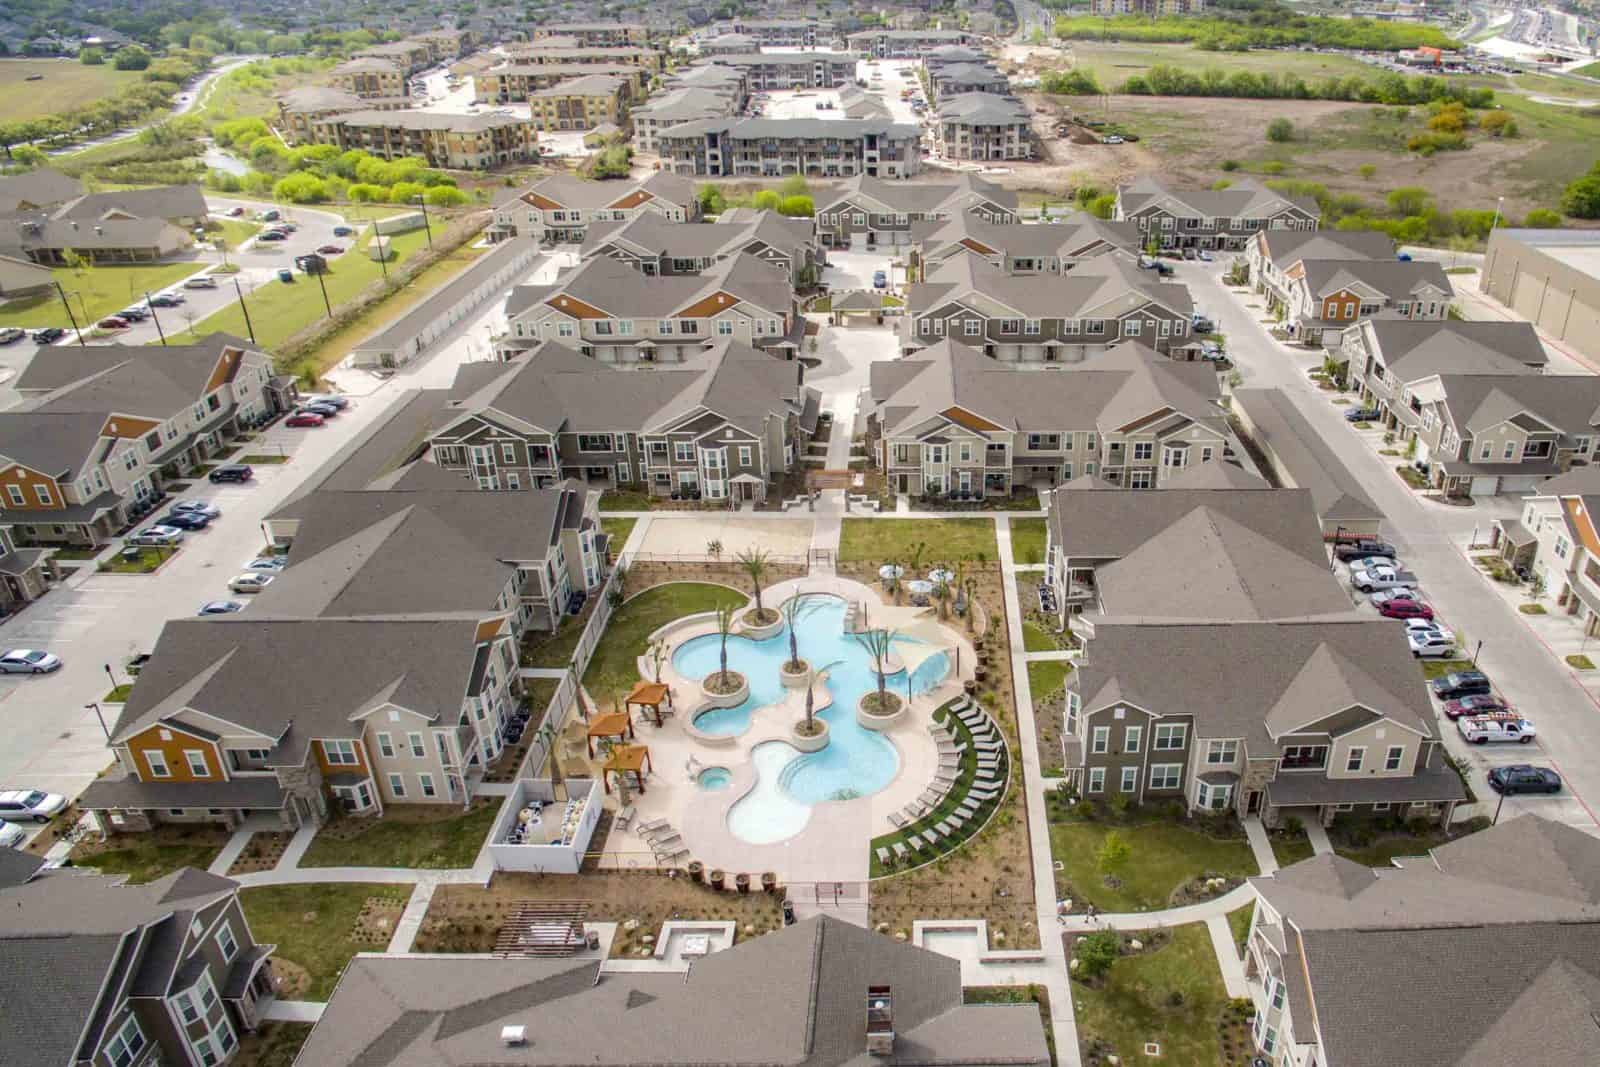 drone photo of apartment complex with swimming pool in center